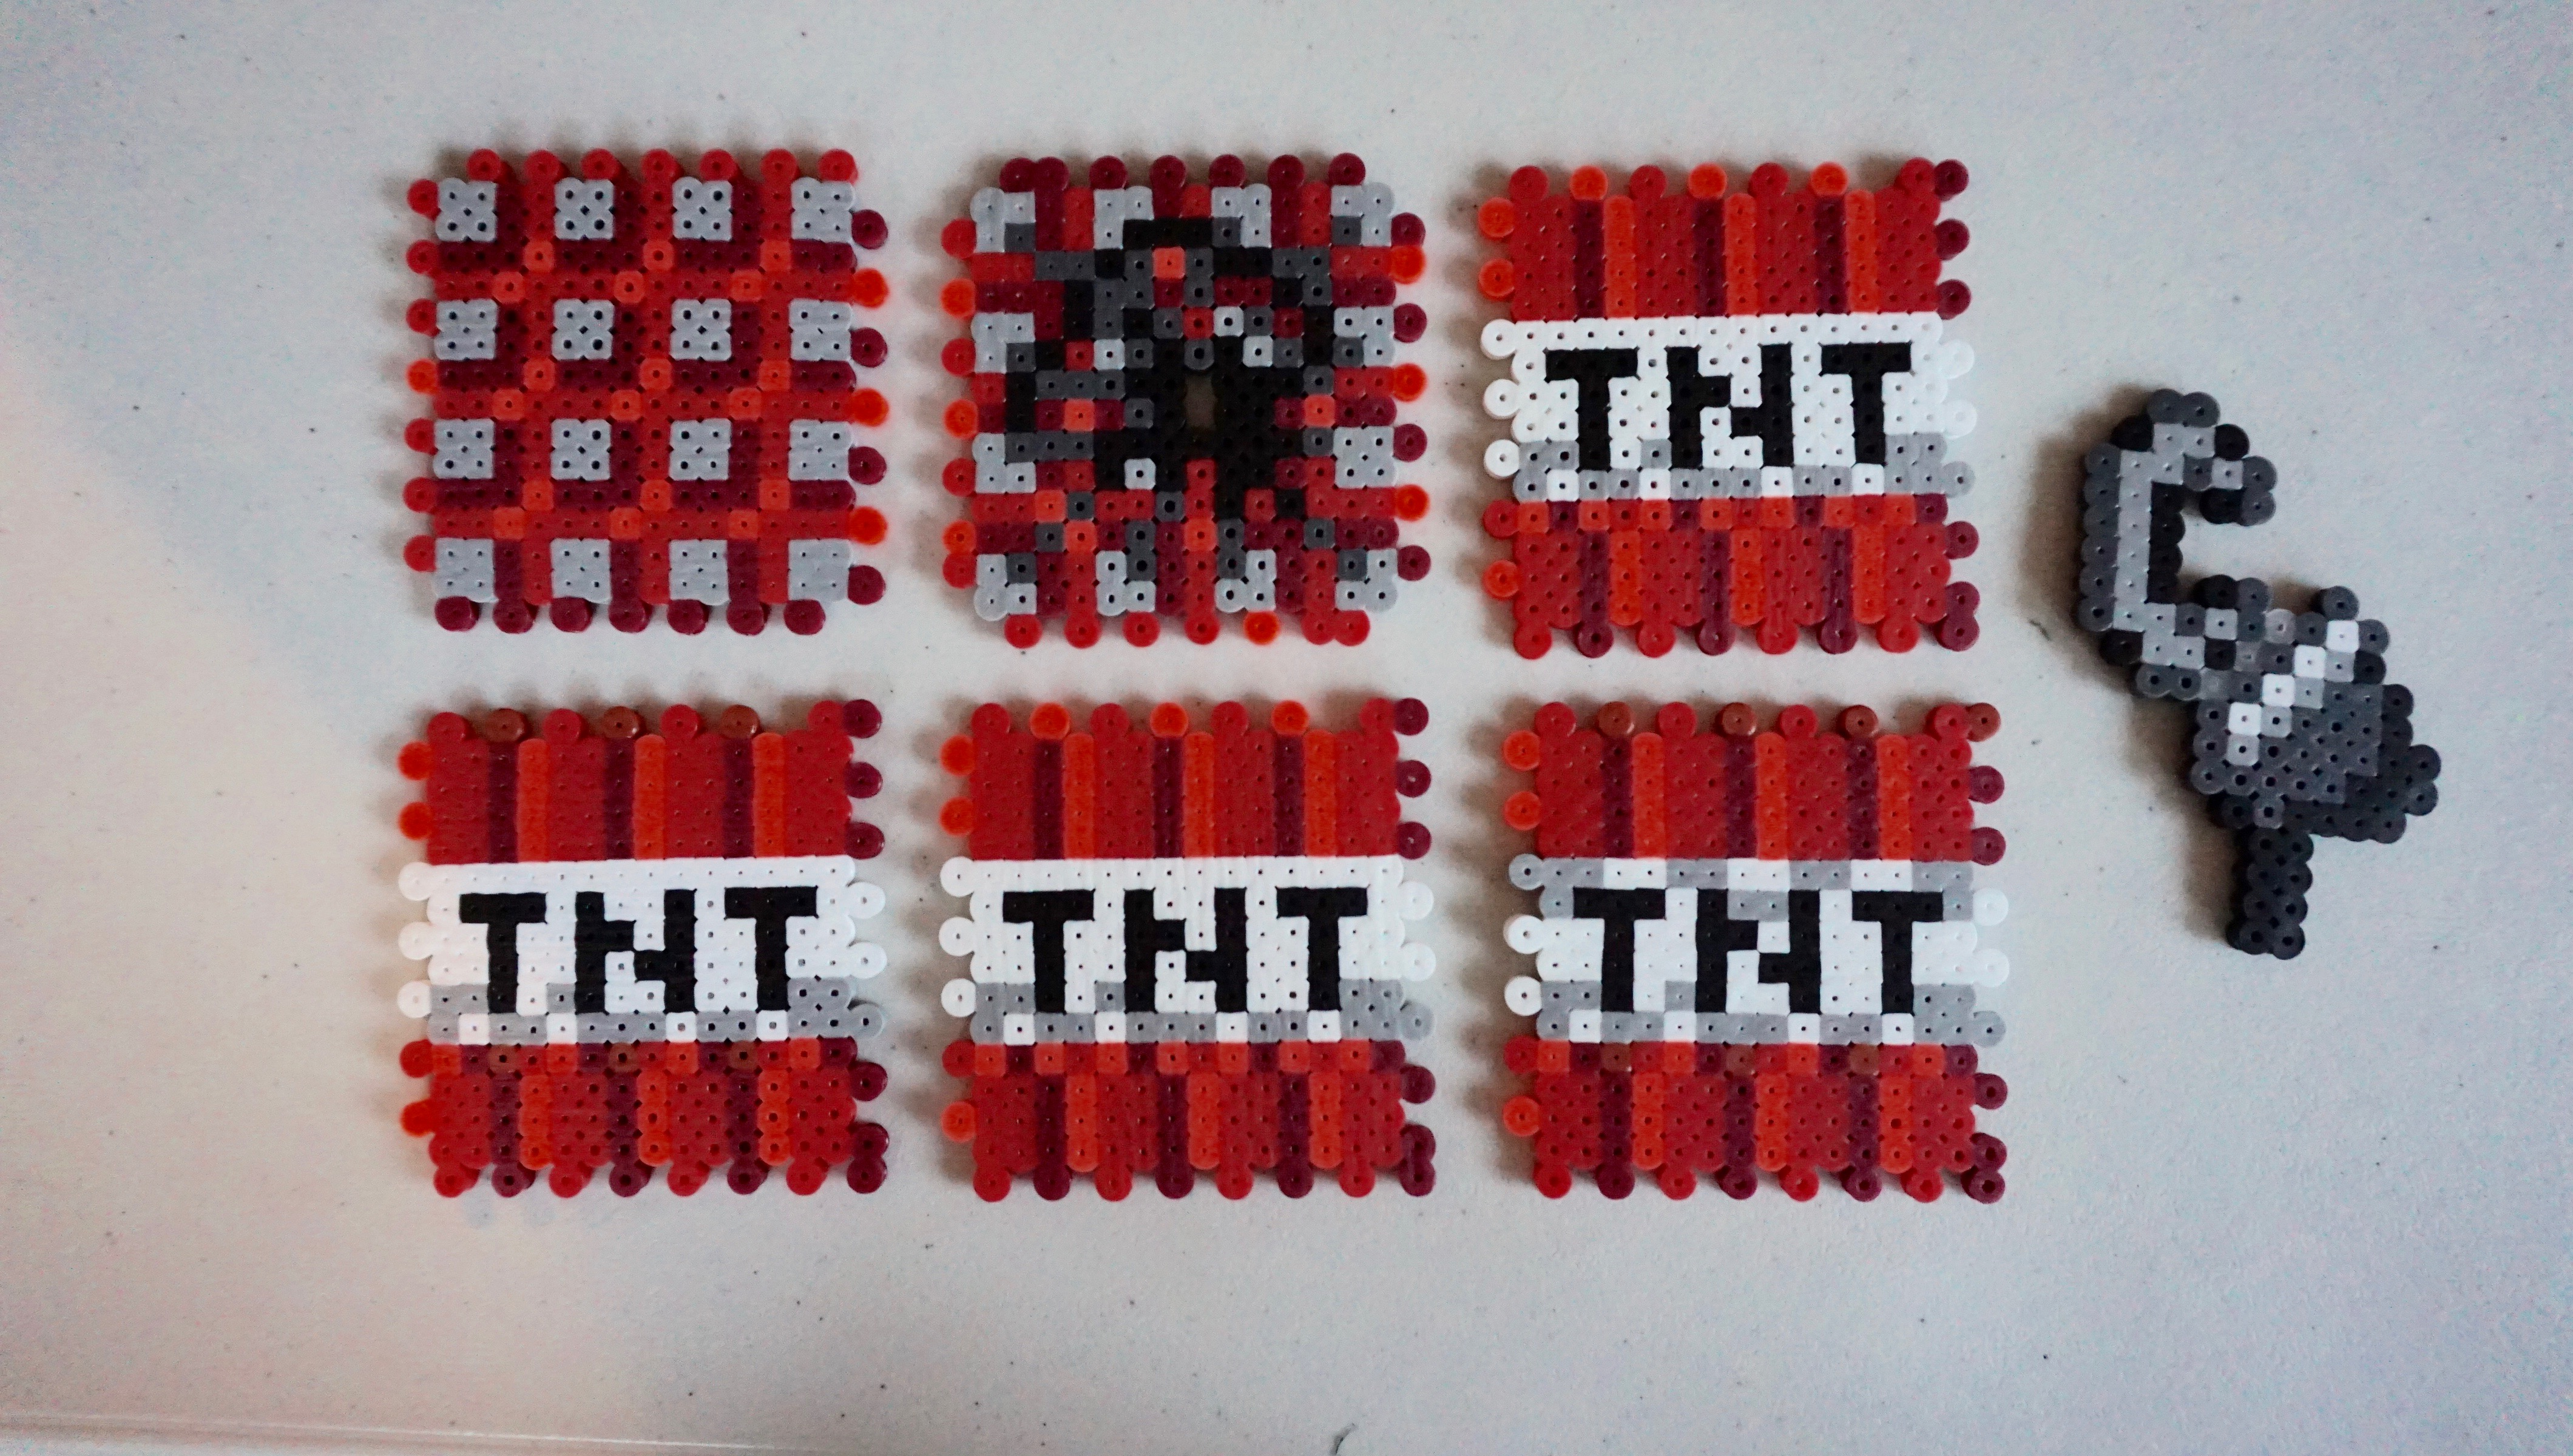 Minecraft-TNT-block-pattern-Minecraft-TNT-perler-beads-Minecraft-birthday-party-decorations-Minec-wallpaper-wpc9007648